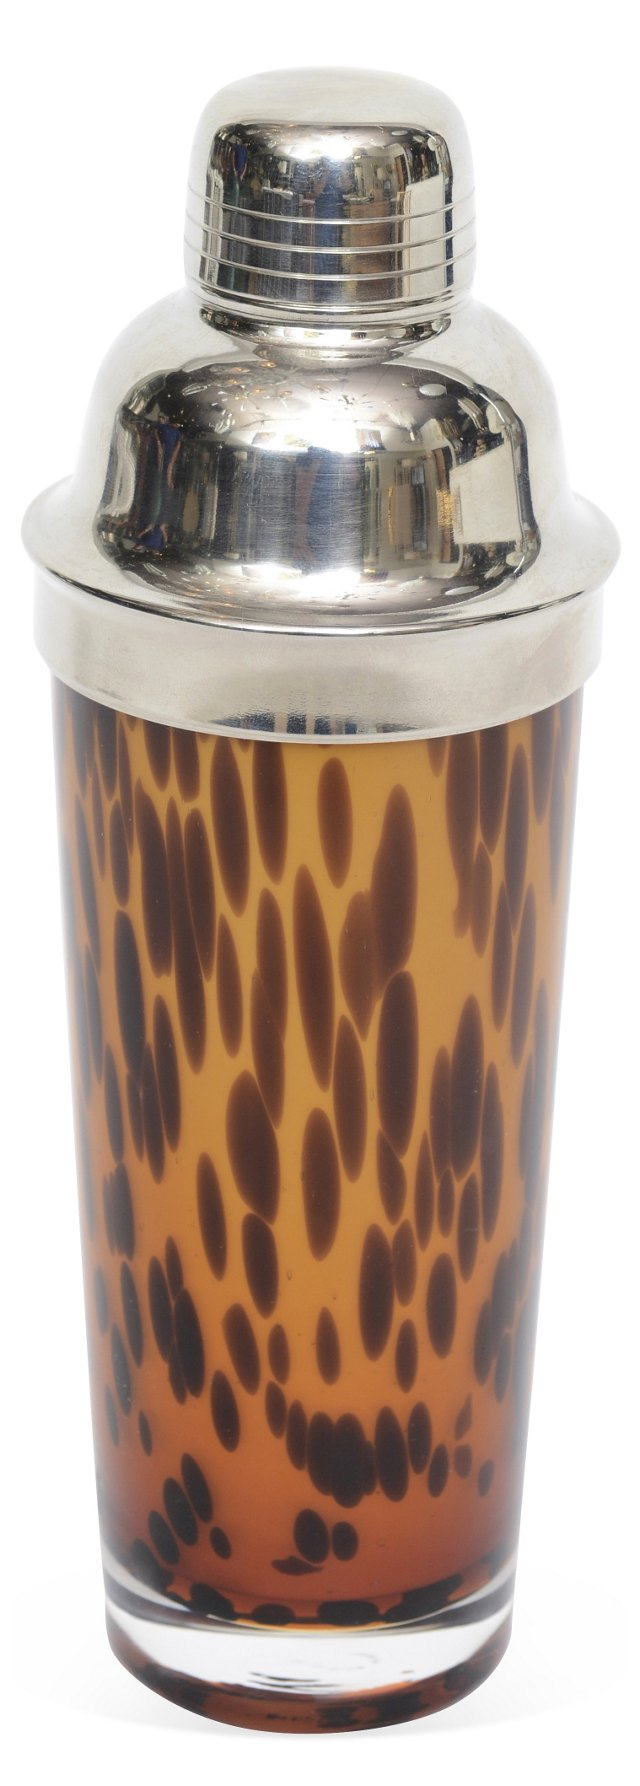 Deco-Style Glass Shaker